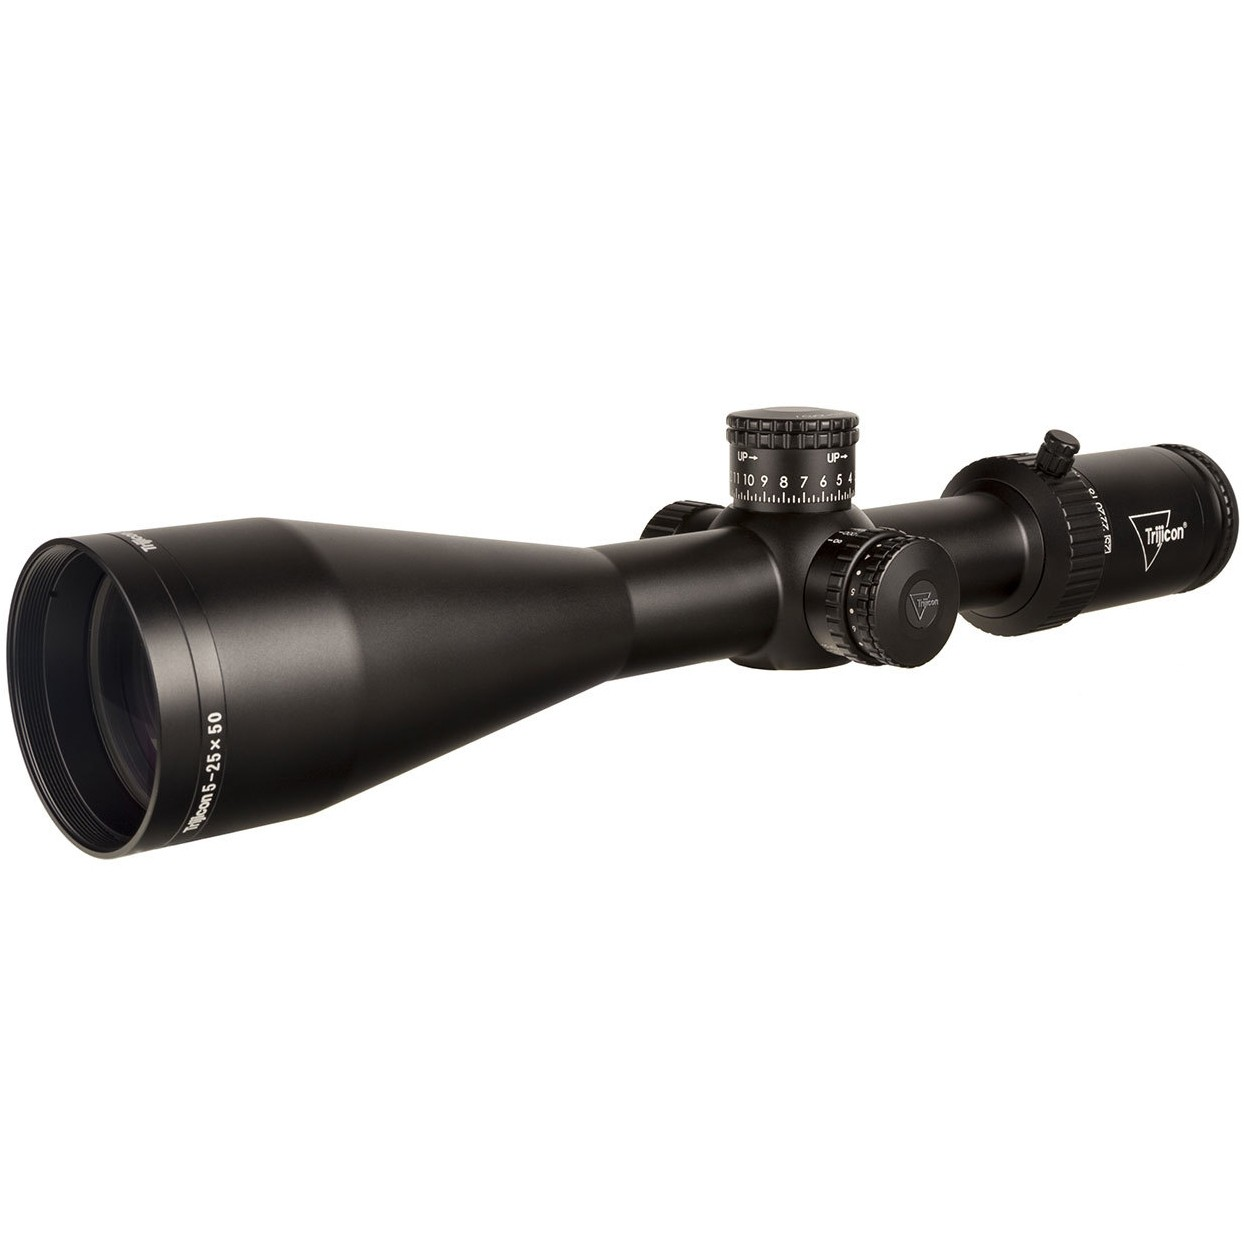 Trijicon 5-25x50 Tenmile HX 30mm Rifle Scope